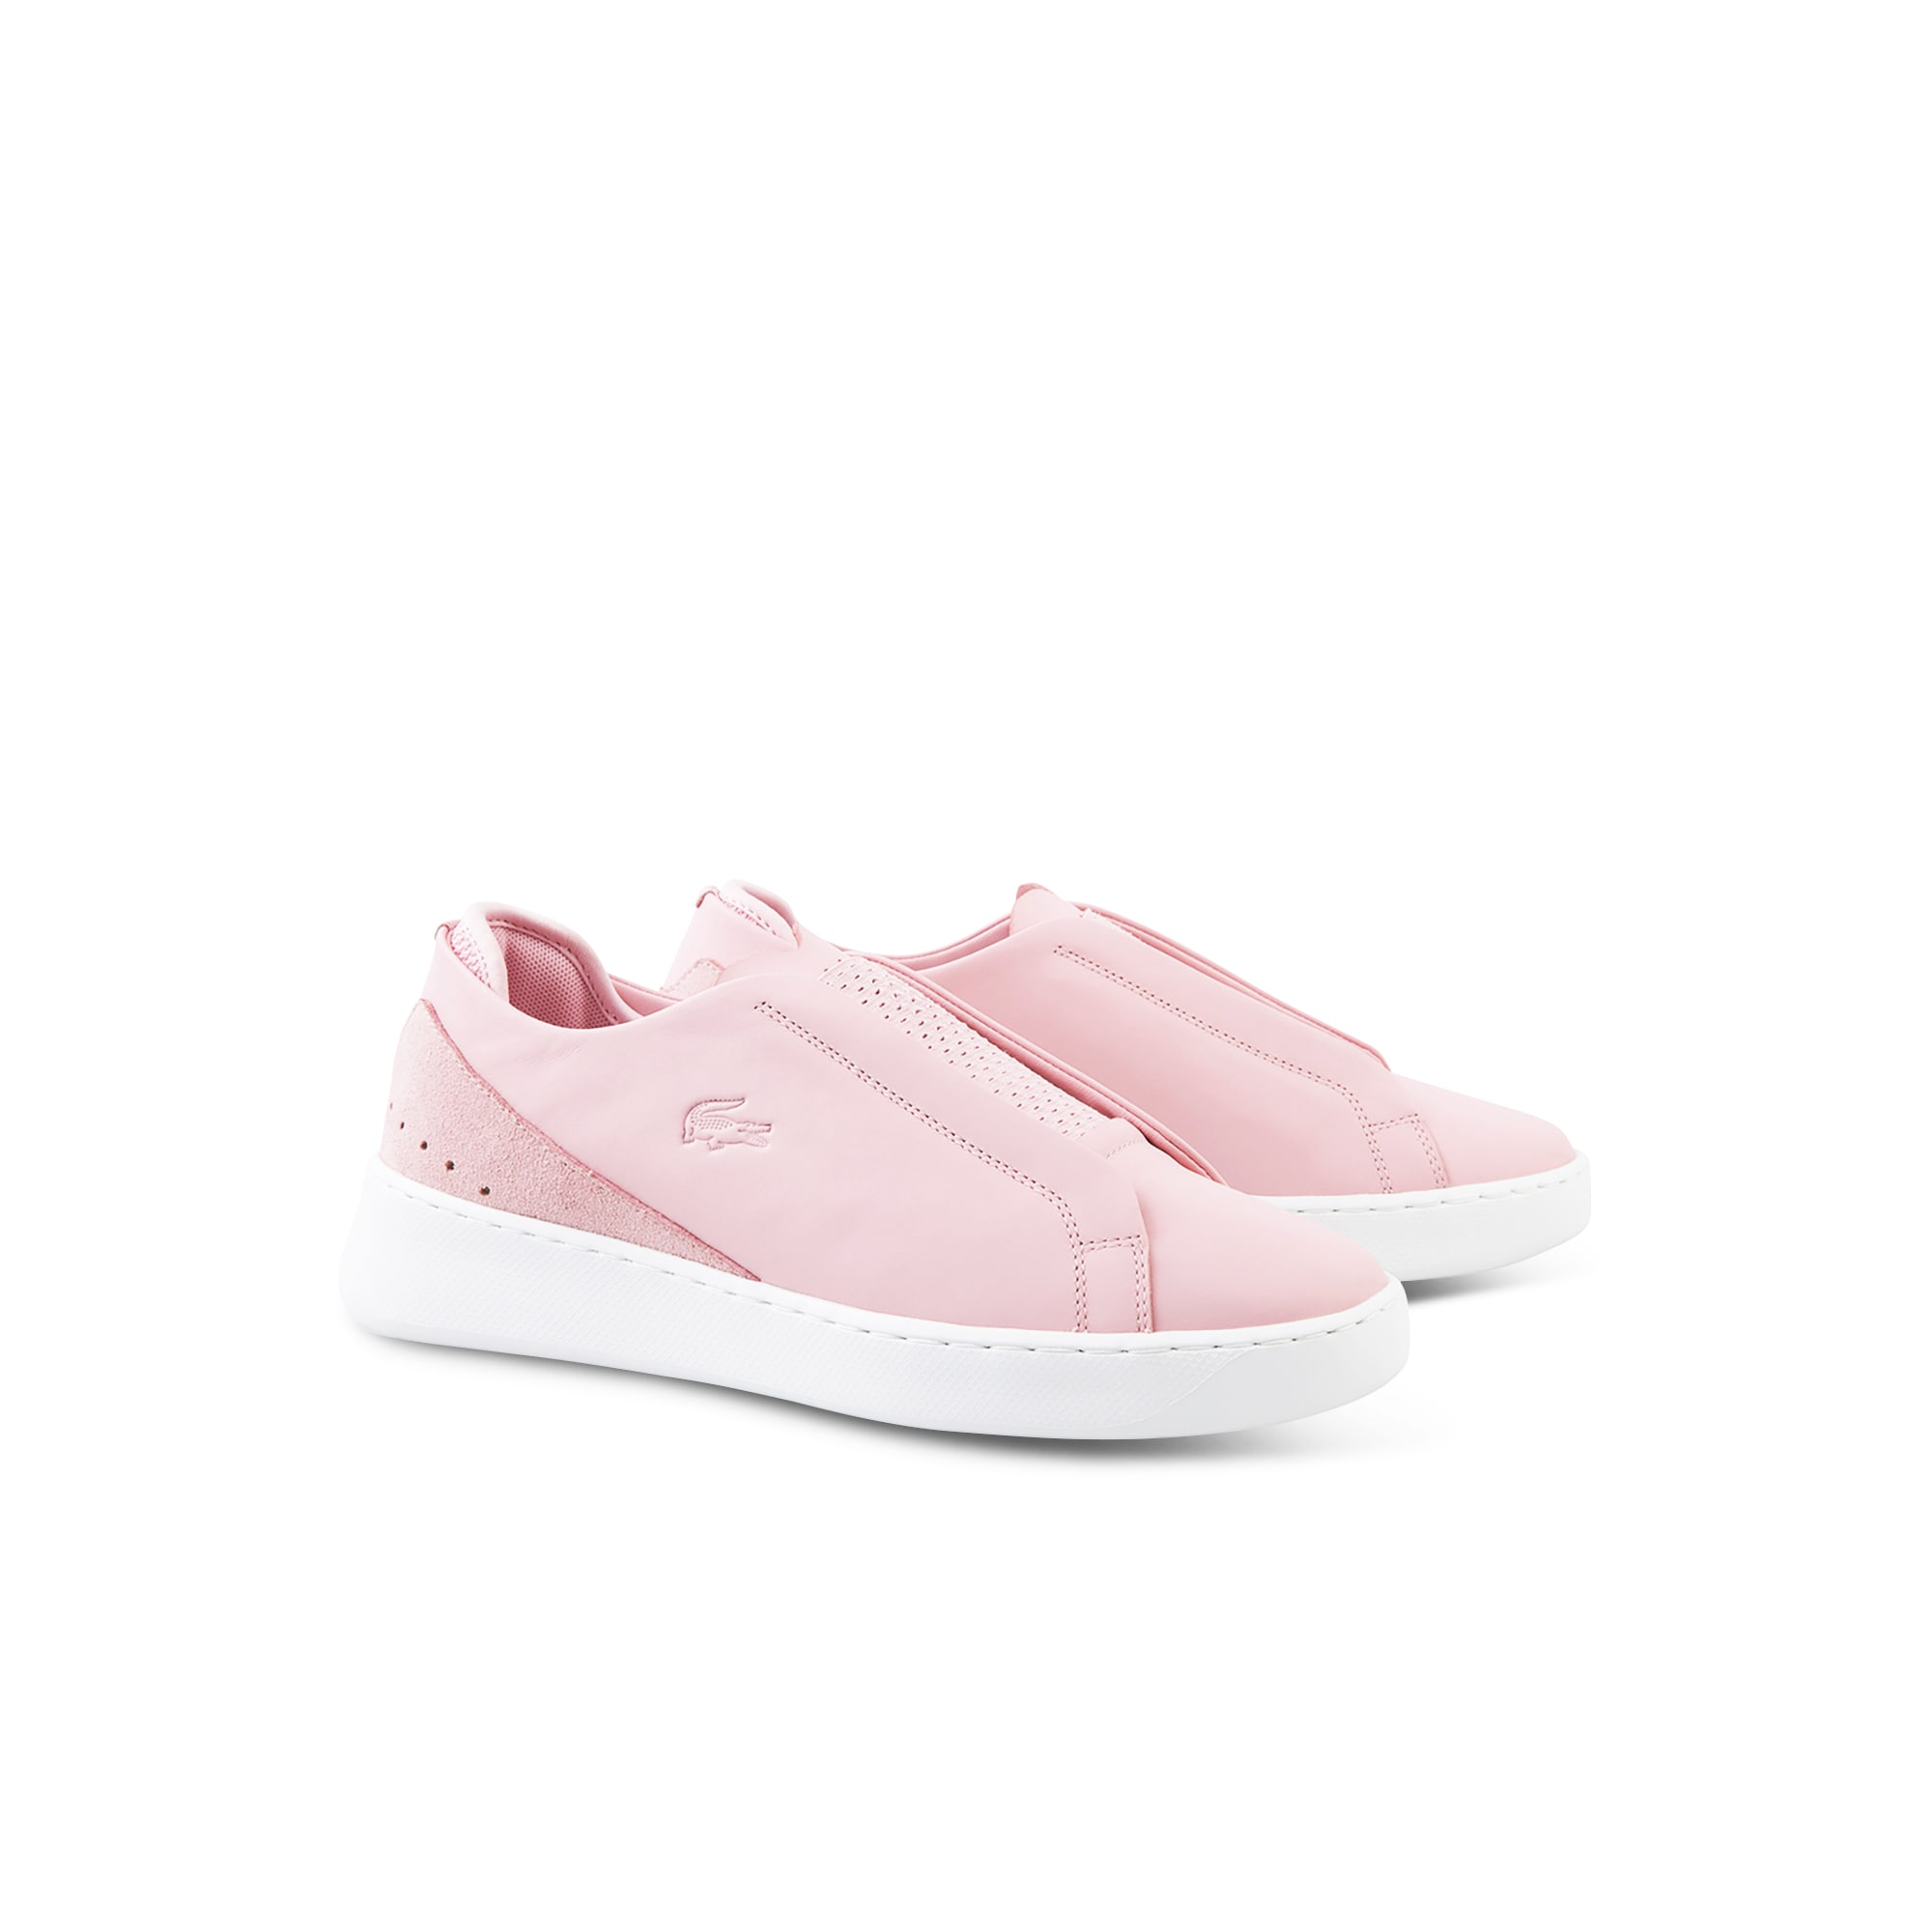 Women's Eyyla Slipons